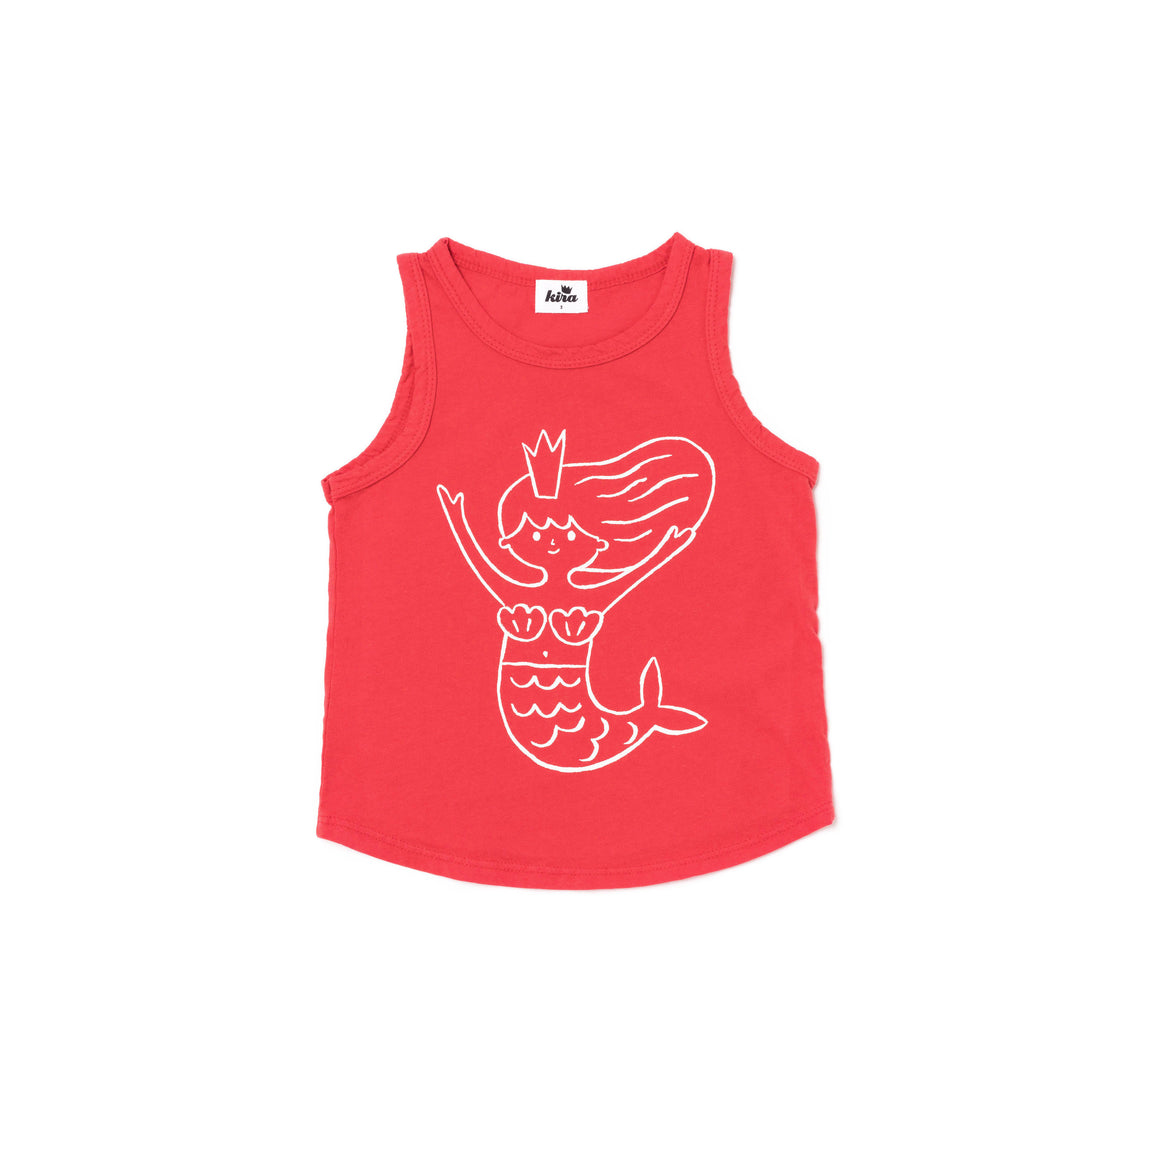 Mermaid Graphic Unisex Tank, Fluro Coral